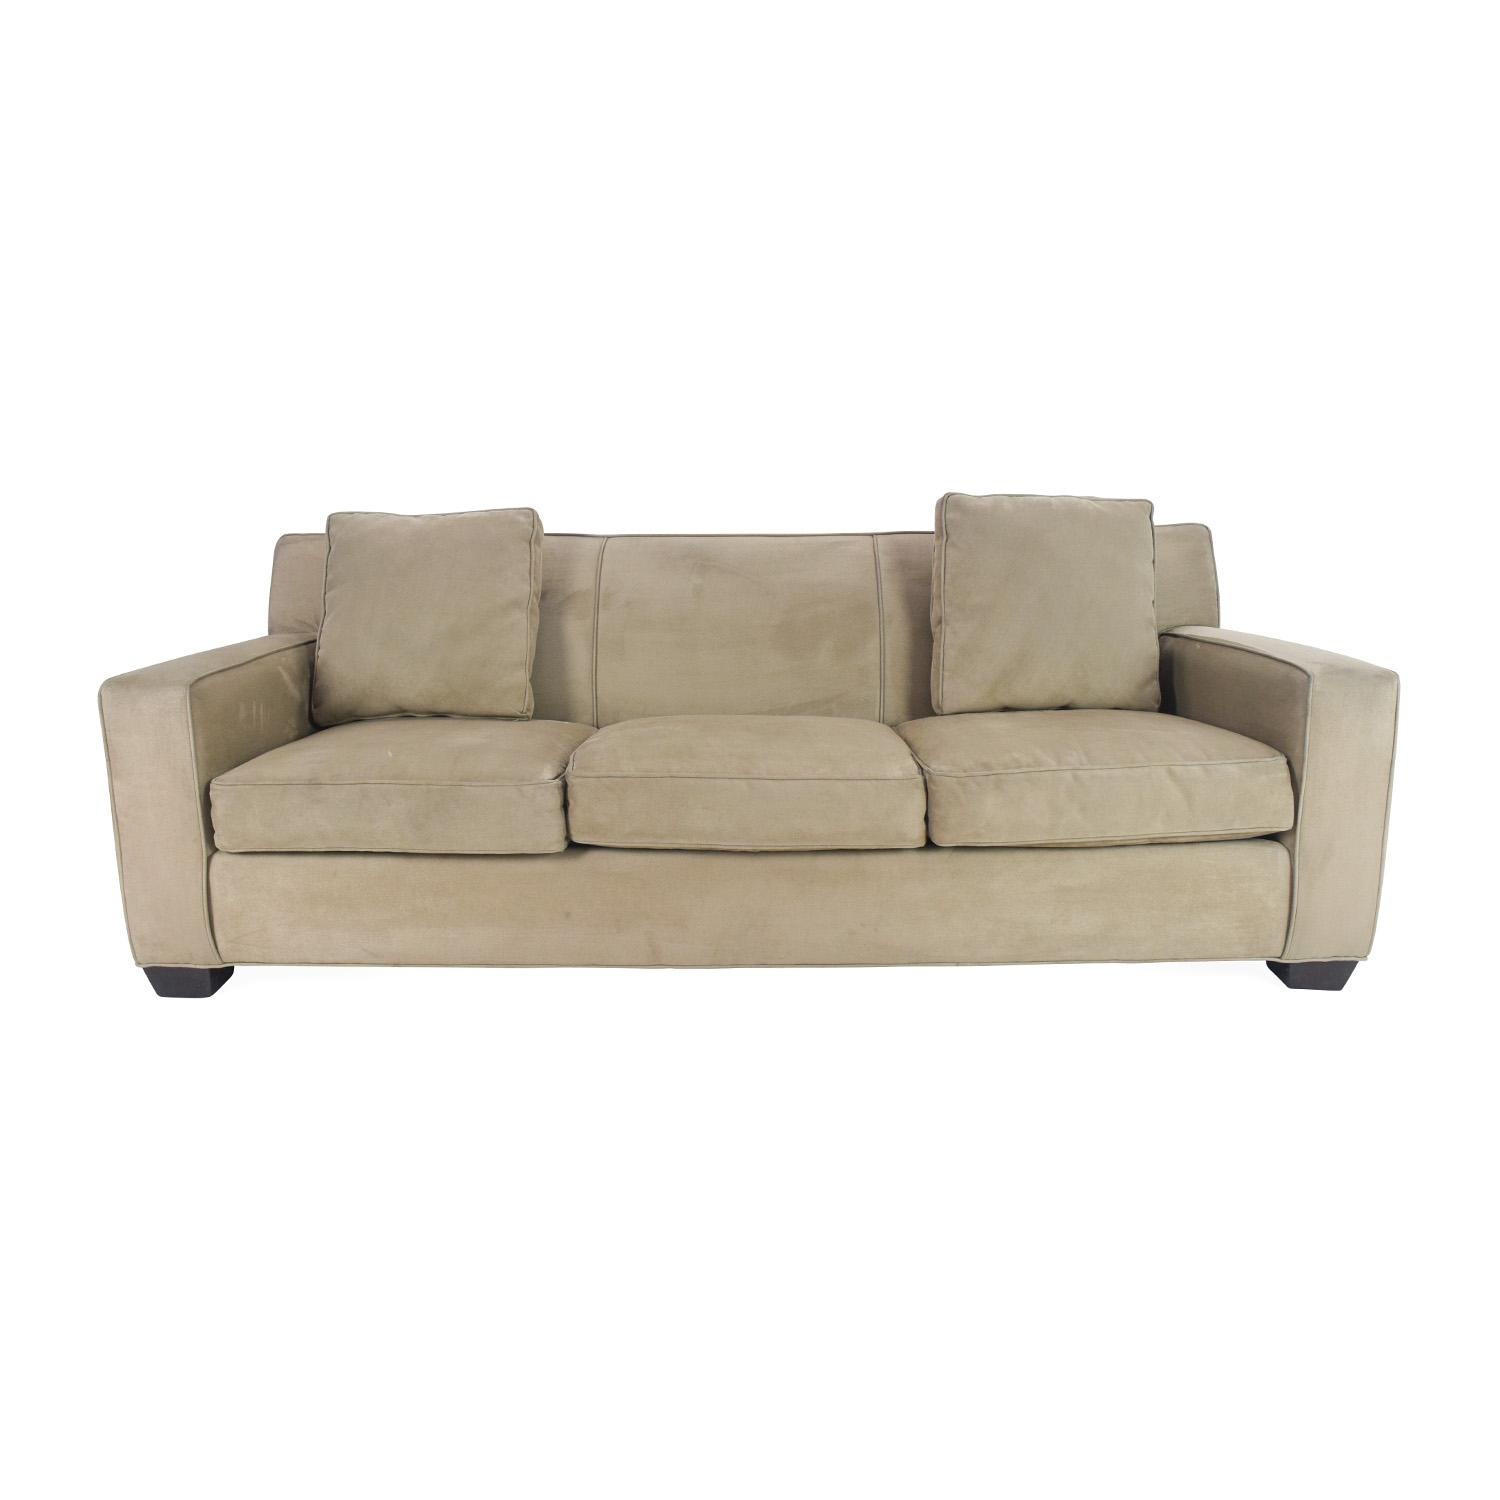 78% Off – Crate And Barrel Crate And Barrel Cameron Sofa / Sofas For Crate And Barrel Futon Sofas (Image 7 of 20)